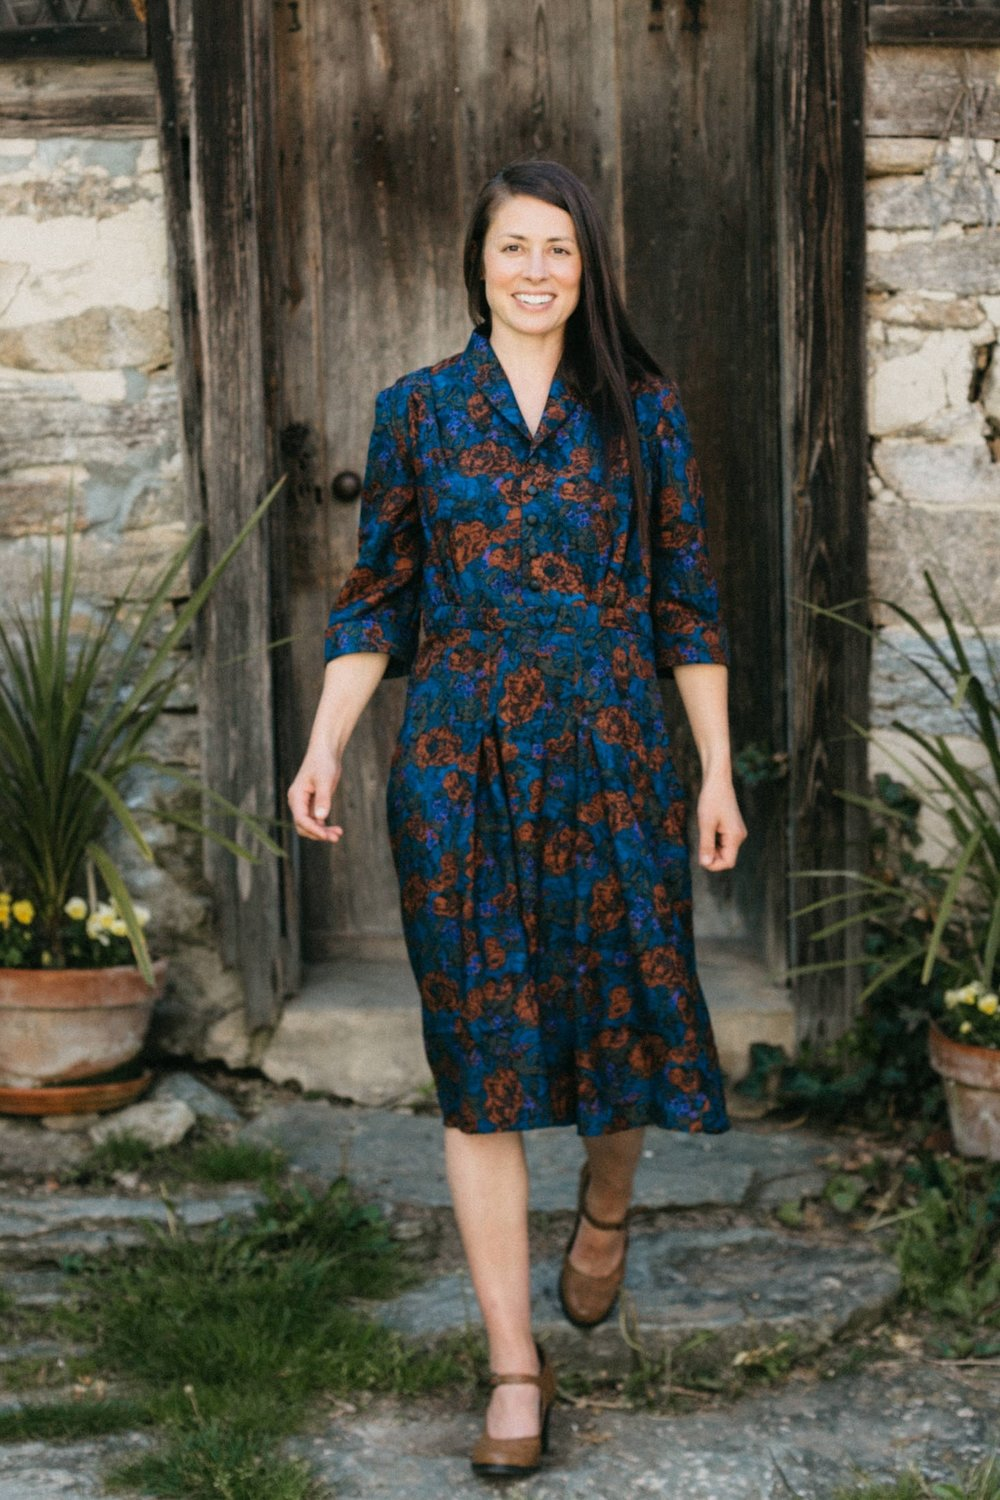 Lindy Shirtdress from Folkwear sewing patterns